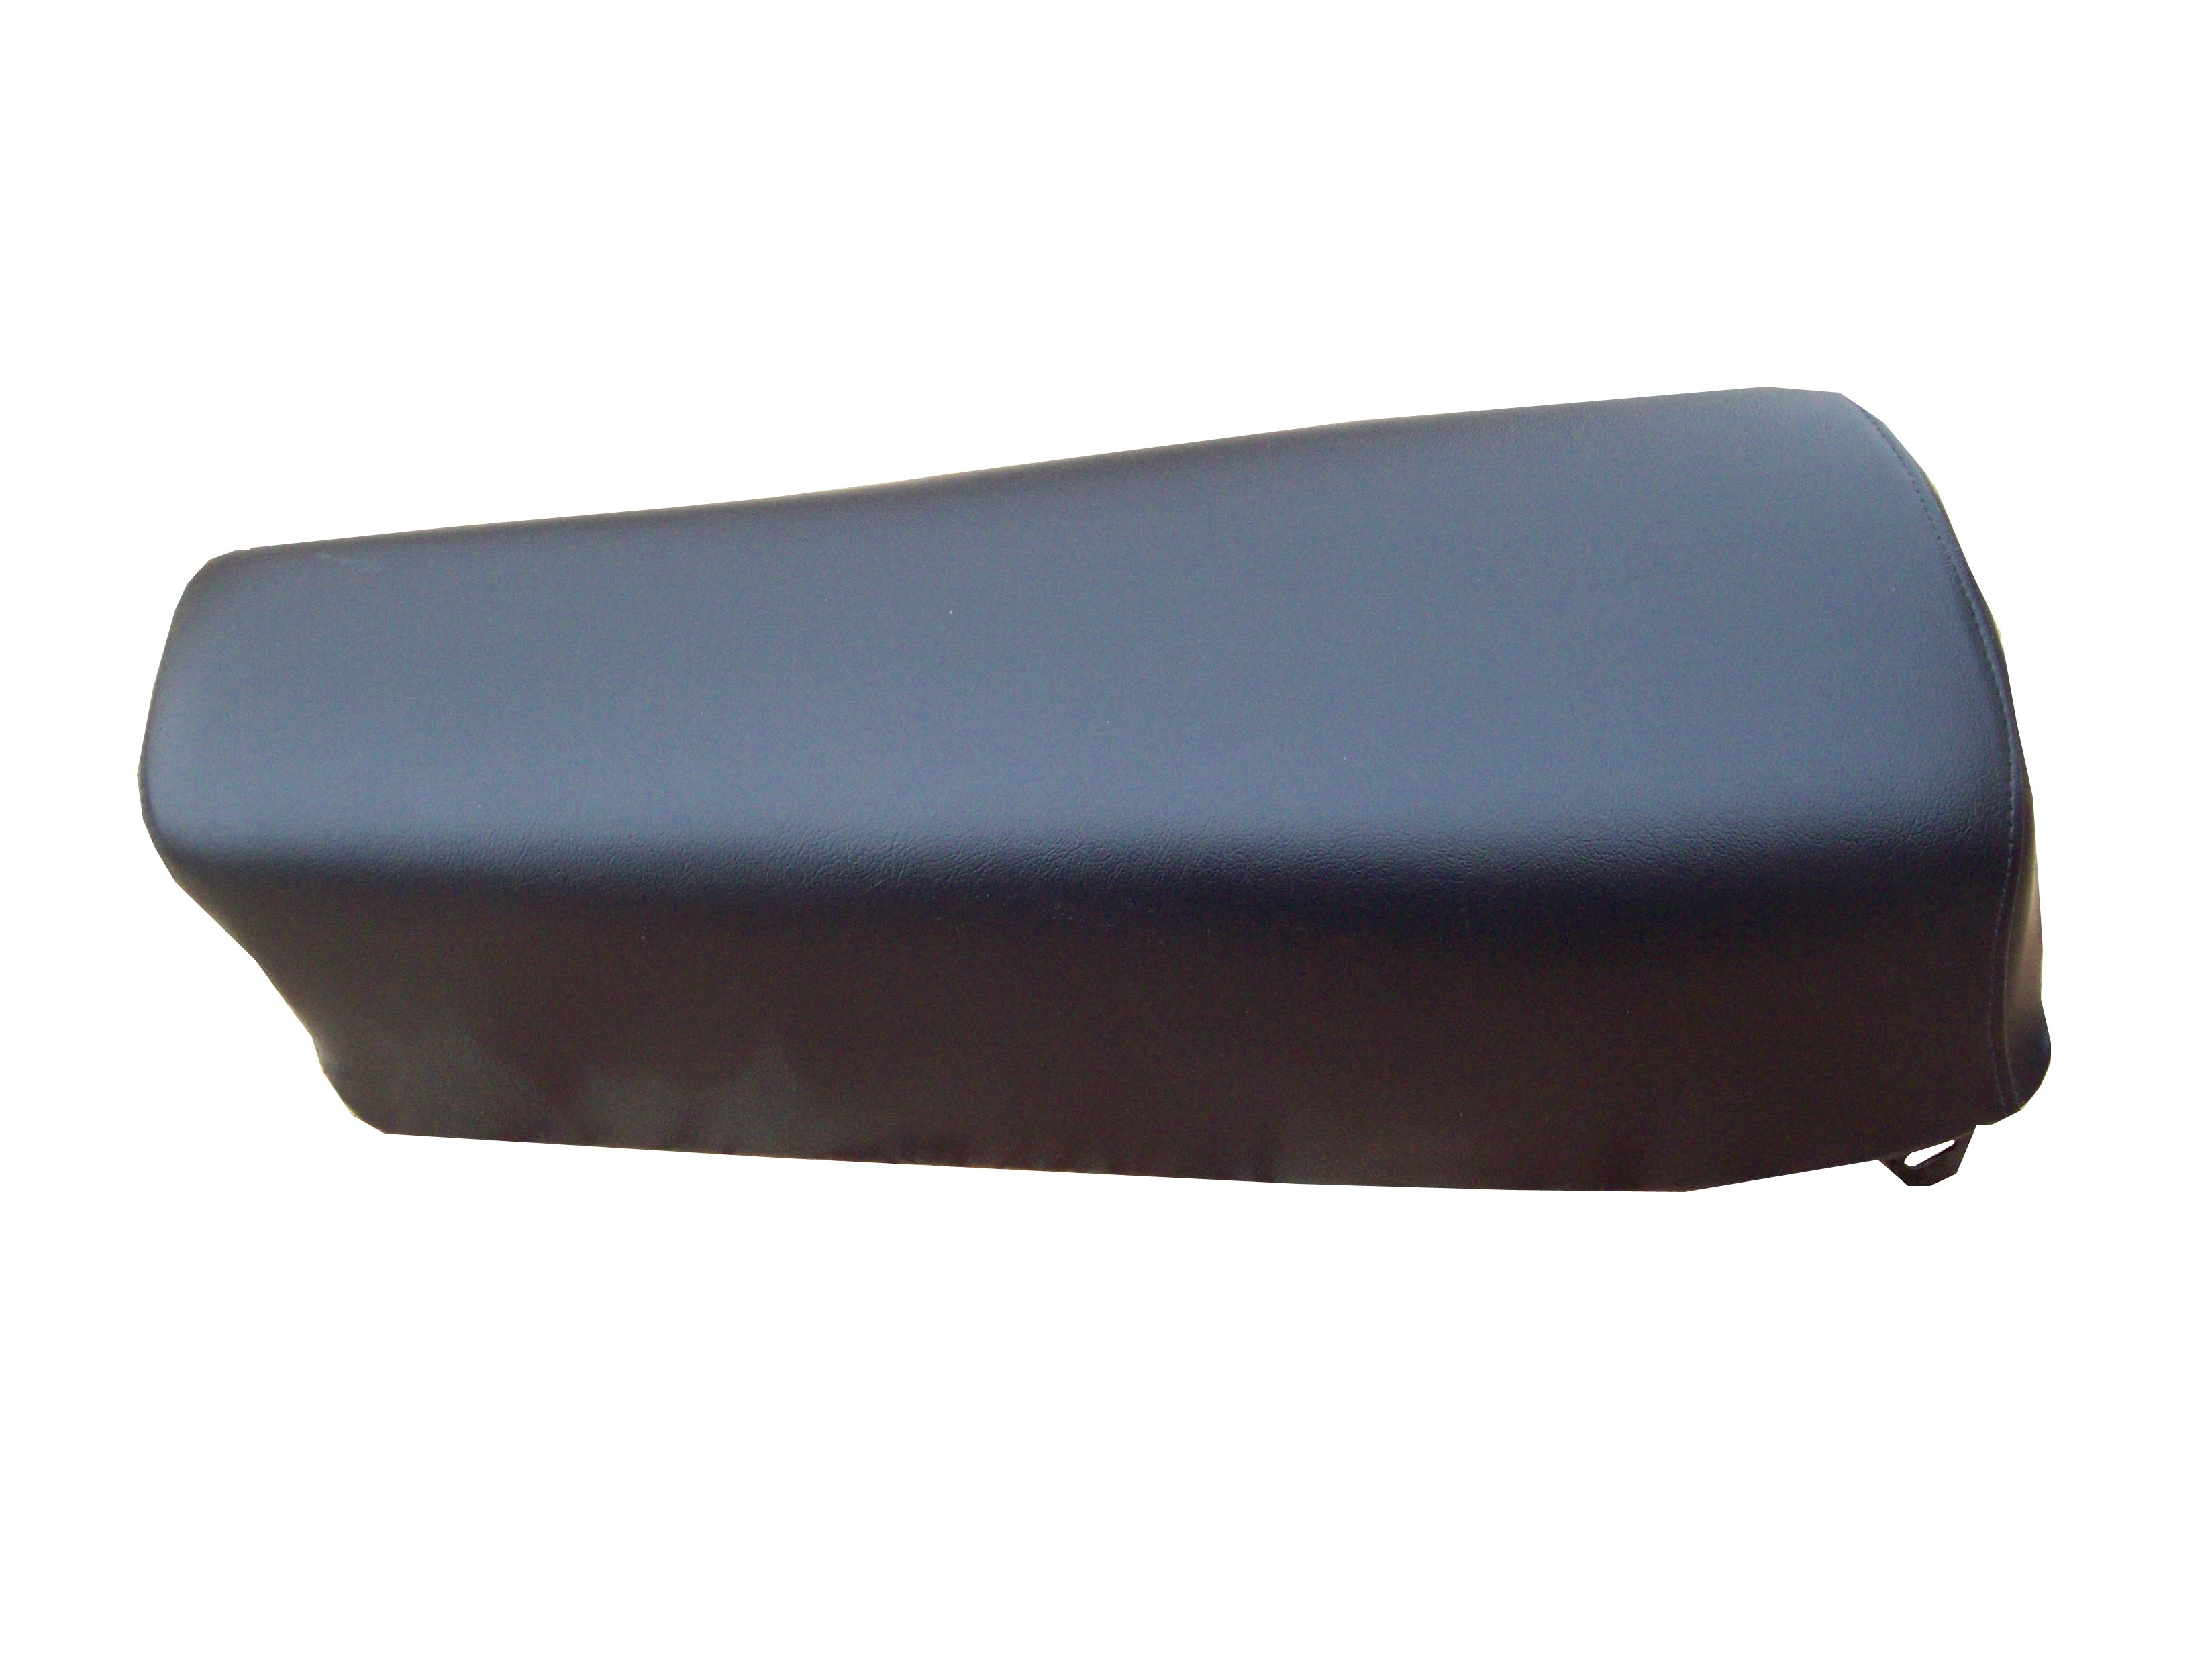 New Reproduction Complete Seat Foam Cover Base fits 1980 Maico